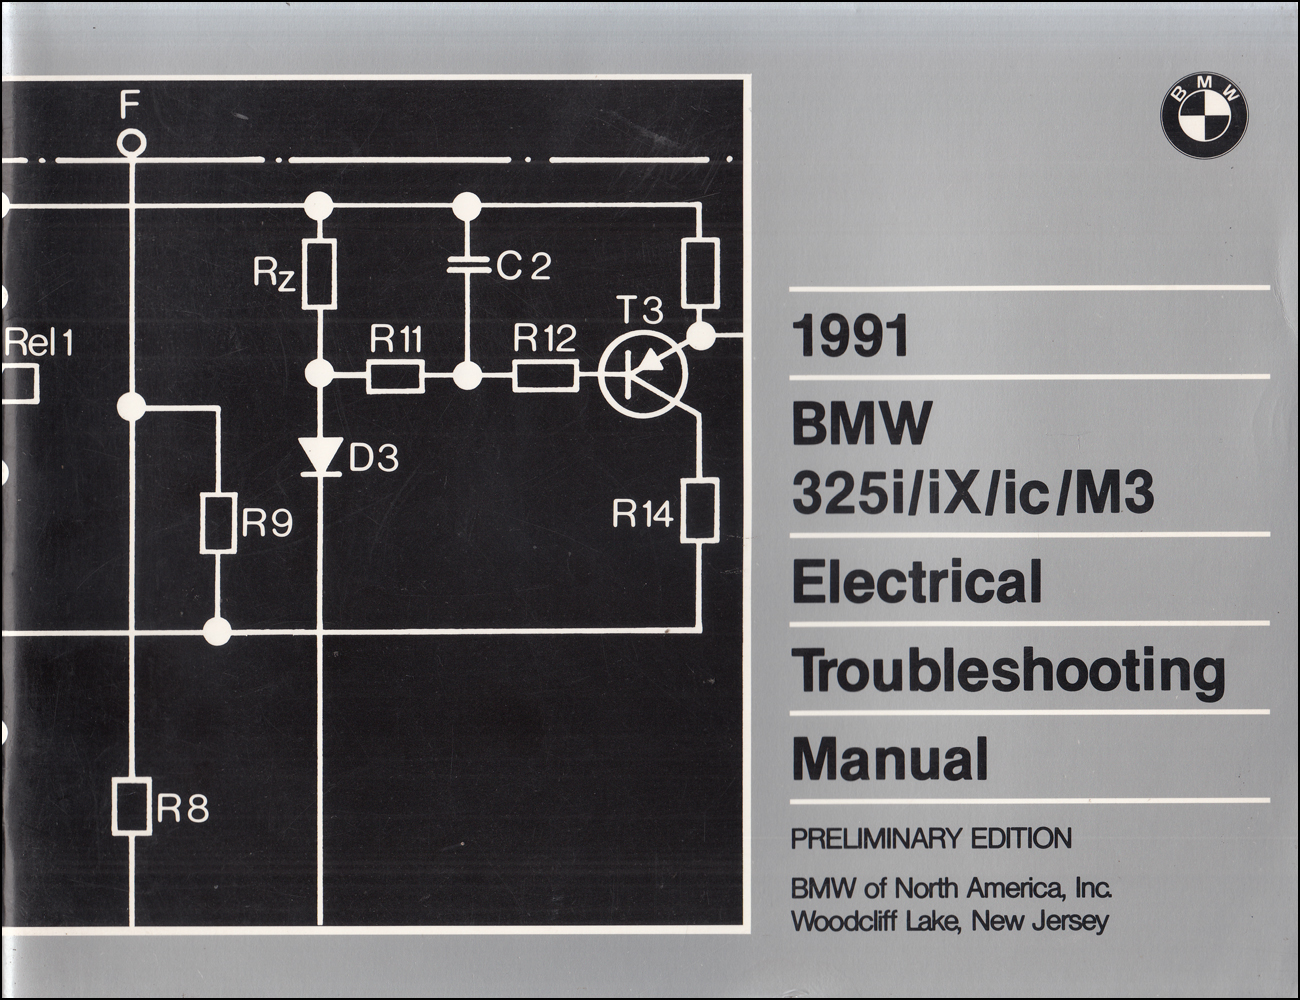 1991 BMW 325i/iX/ic/M3 Electrical Troubleshooting Manual Preliminary edition